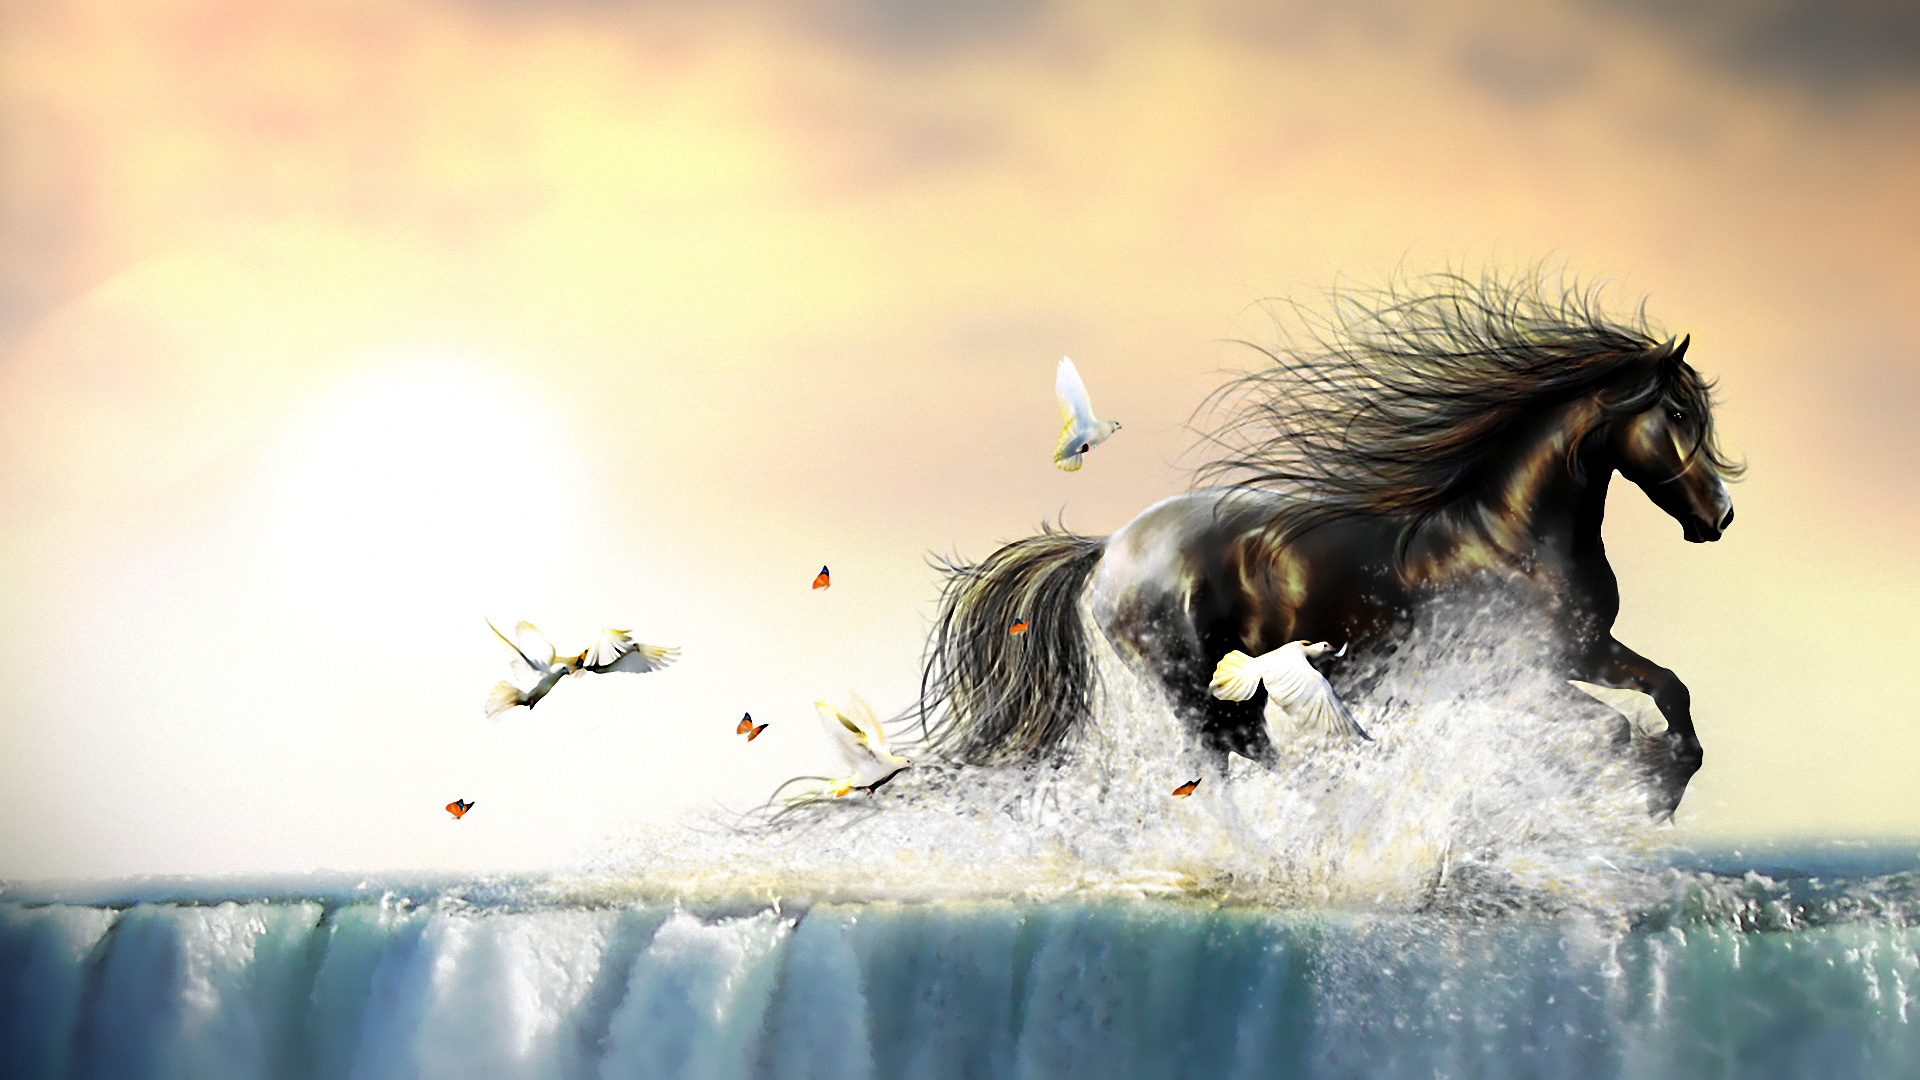 Beautiful Horse Full HD Wallpaper And Background Image